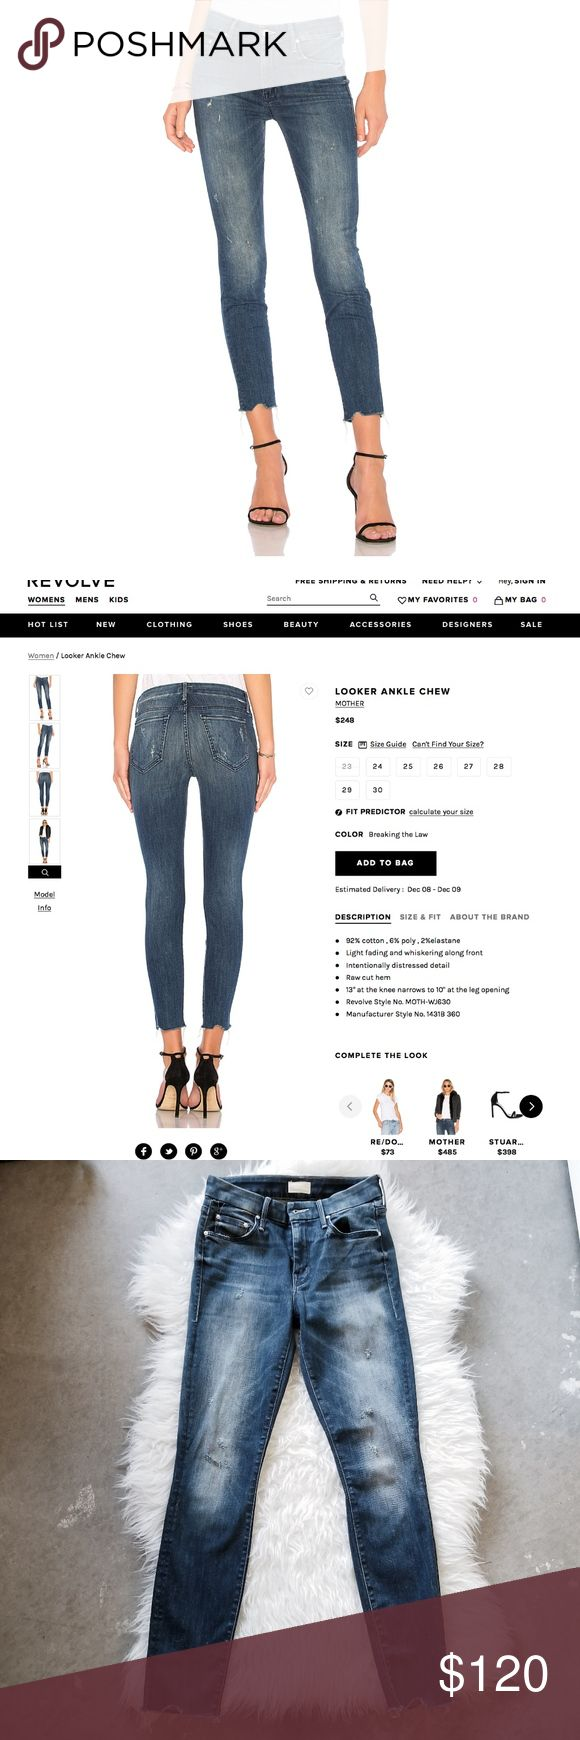 """MOTHER Denim - Looker Ankle Chew The Looker Ankle Chew from Mother Denim in Breaking the Law.  New without tags  This slim, straight leg jeans has a RAW hemline in a faded blue wash, with subtle whiskering and intentional distressed details throughout, featuring a mid rise and a stretch fit. Single button closure with a zip fly and pockets.   92% cotton, 6% polyester and 2% elastane - these jeans are soft and stretchy. 13"""" at the knee narrows to 10"""" at the leg opening  Machine wash cold…"""